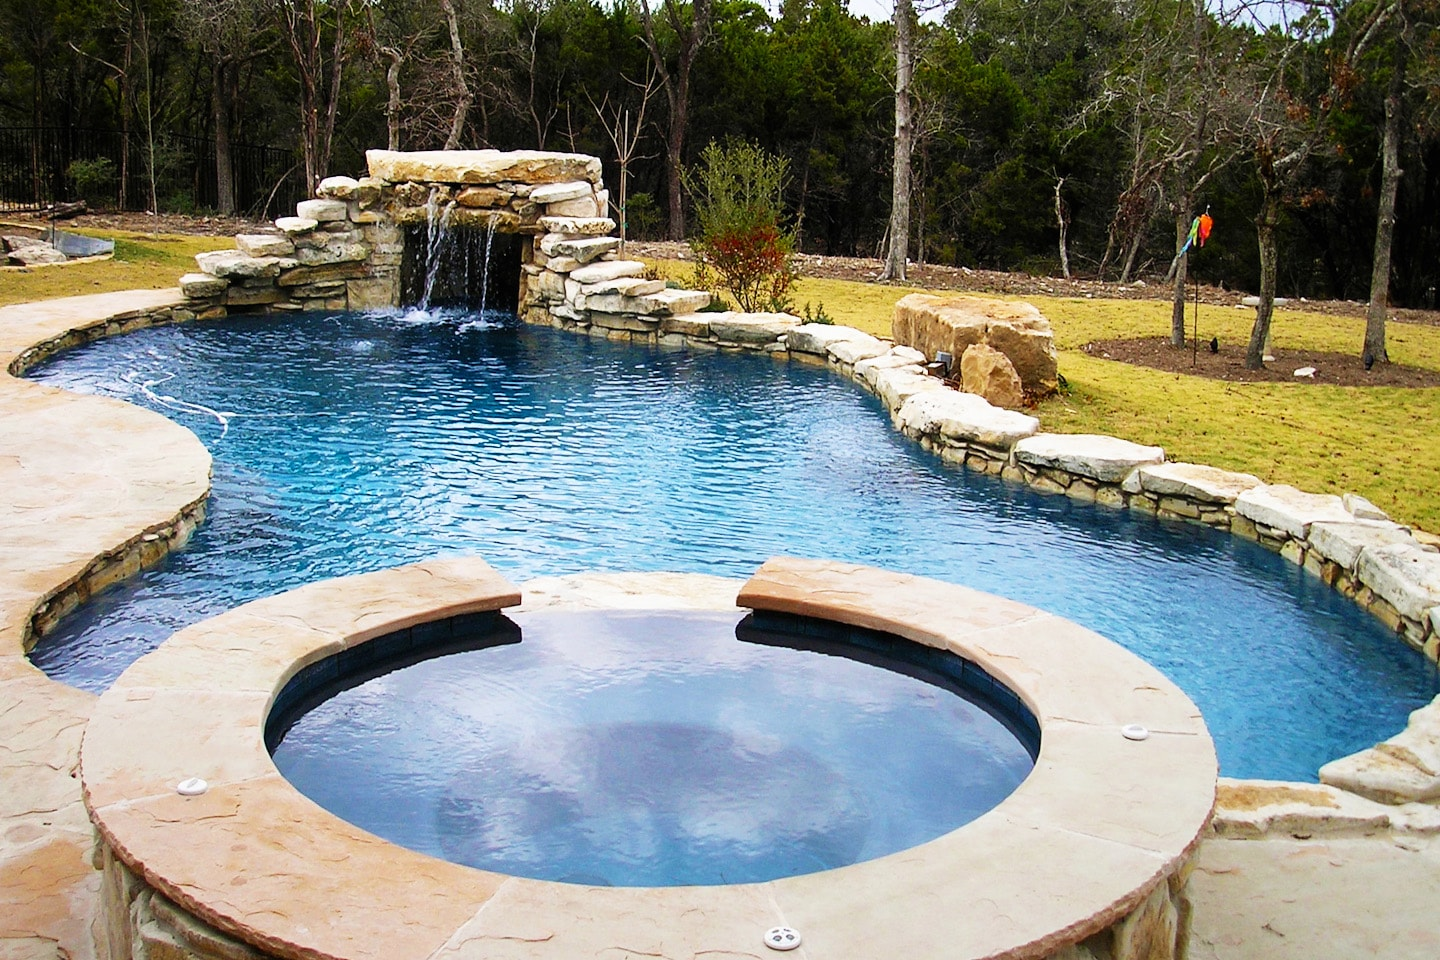 grottos custom pool designs - Swimming Pools With Grottos